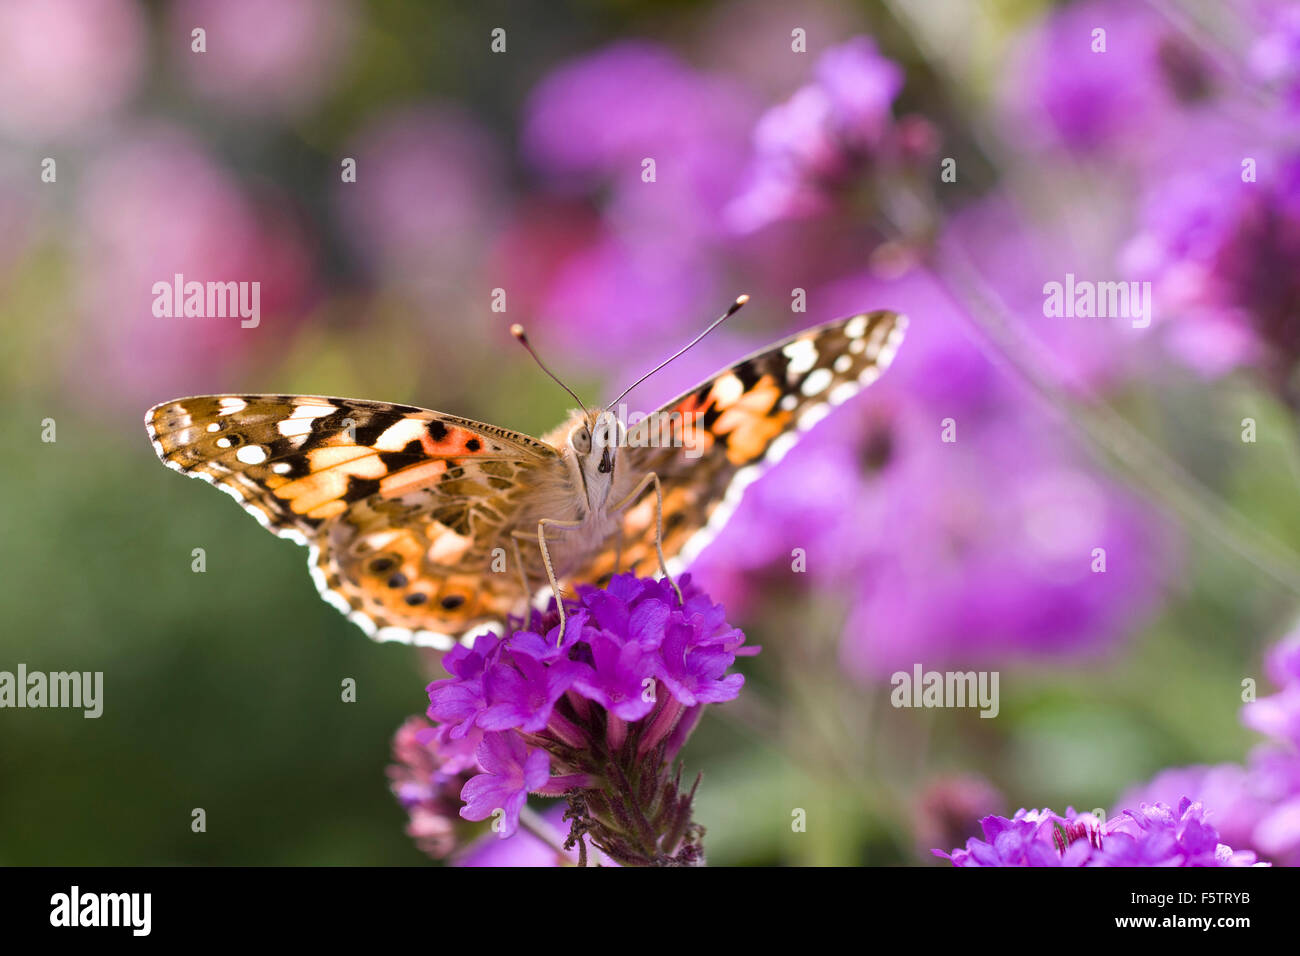 Painted Lady Butterfly feeding on flowers, Vanessa cardui - Stock Image